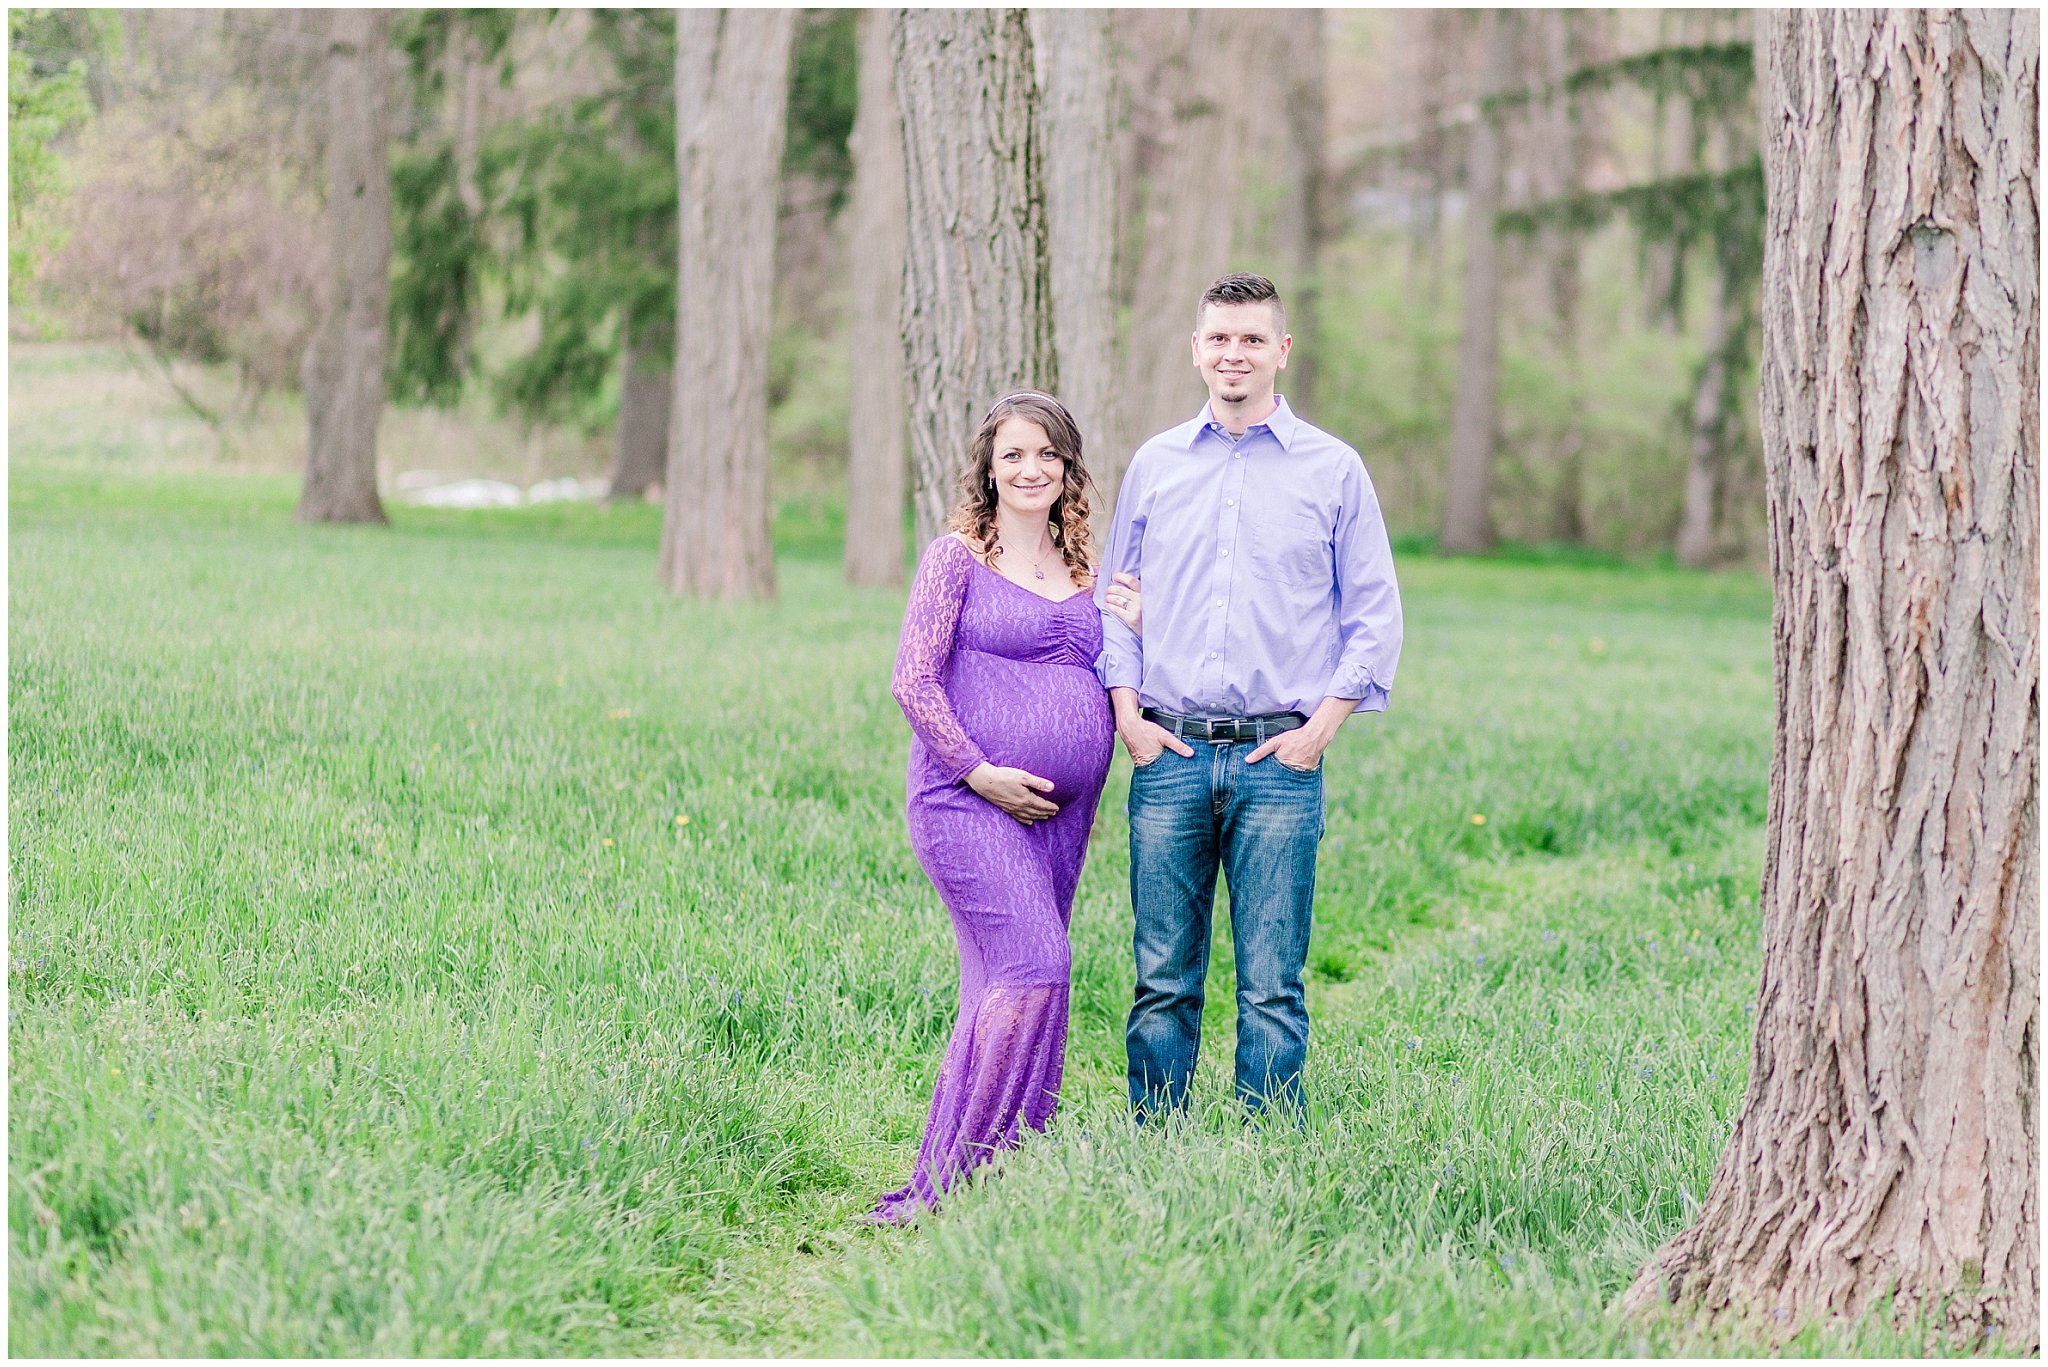 alburtis lockridge blue bonnet purple inspried maternity and family session pennsylvania wedding and lifestyle photographer (18).jpg